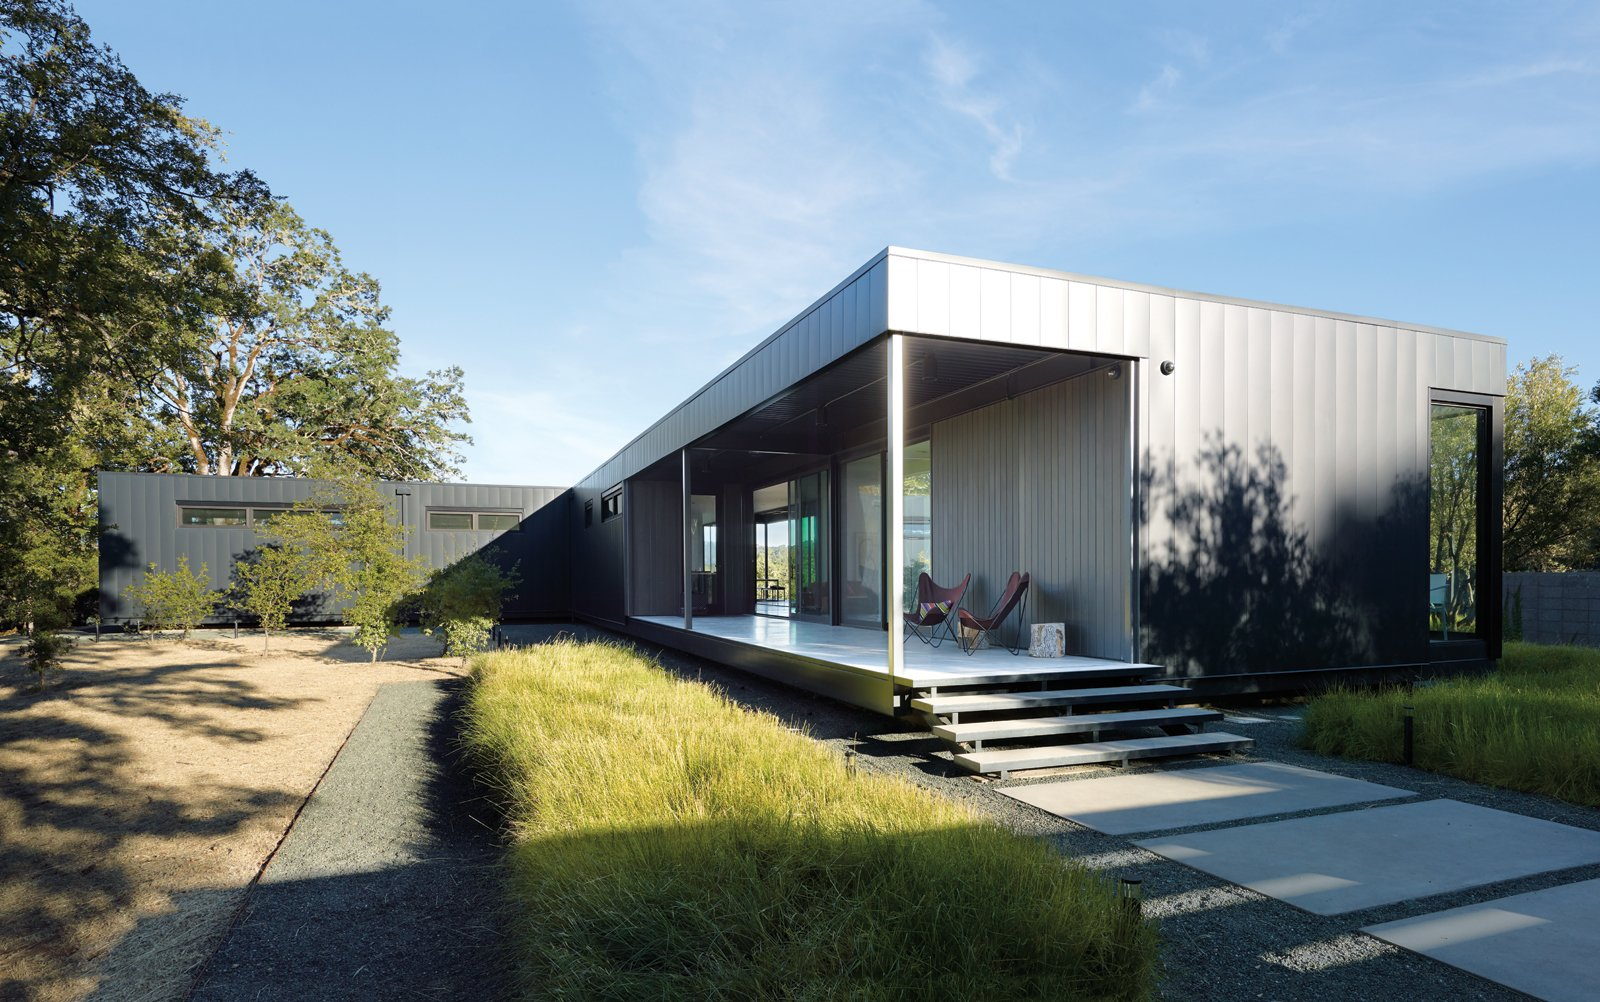 """Outdoor and Front Yard When Abbie and Bill Burton hired Marmol Radziner to design their prefab weekend home, their two requests were """"simple-simple, replaceable materials,"""" says Abbie—such as concrete floors (poured offsite in Marmol Radziner's factory) and metal panel siding—and """"the ability to be indoors or outdoors with ease."""" Deep overhangs provide shade and protection from rain, so the Burtons can leave their doors open year-round and hang out on their 70-foot-long deck even in inclement weather. They visit the house once a month, usually for a week at a time, with Vinnie and Stella, their rescue Bernese Mountain dogs. Their two adult children occasionally join them. The couple hopes to one day retire here.  Photo 10 of 10 in 10 Modular Dwellings That Break Away From Traditional Building Practices from A Simple Plan"""